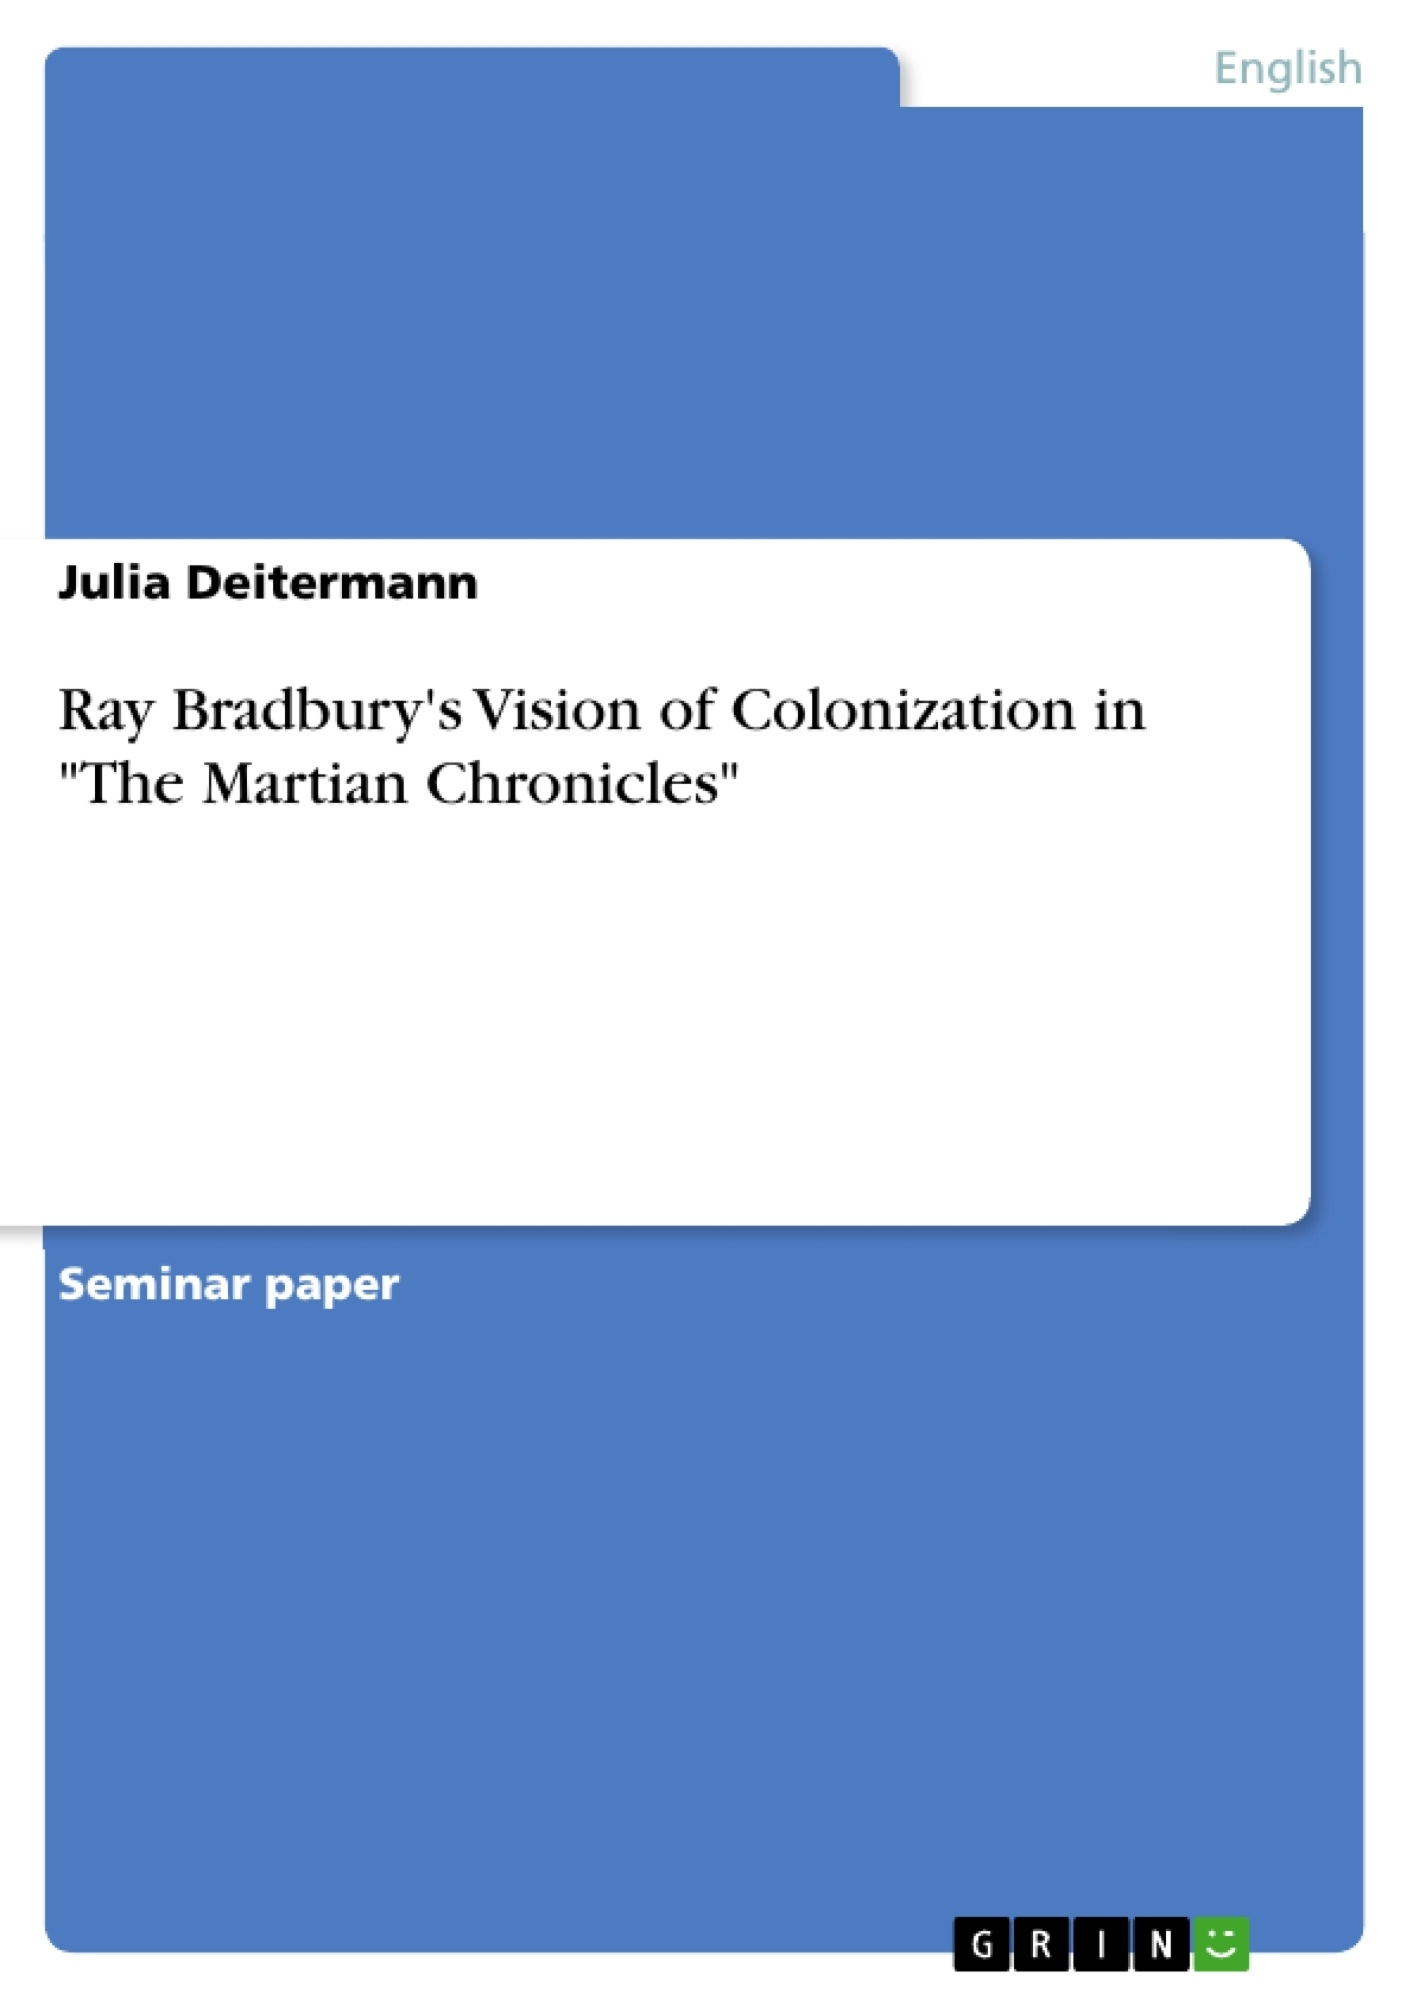 """Title: Ray Bradbury's Vision of Colonization in """"The Martian Chronicles"""""""